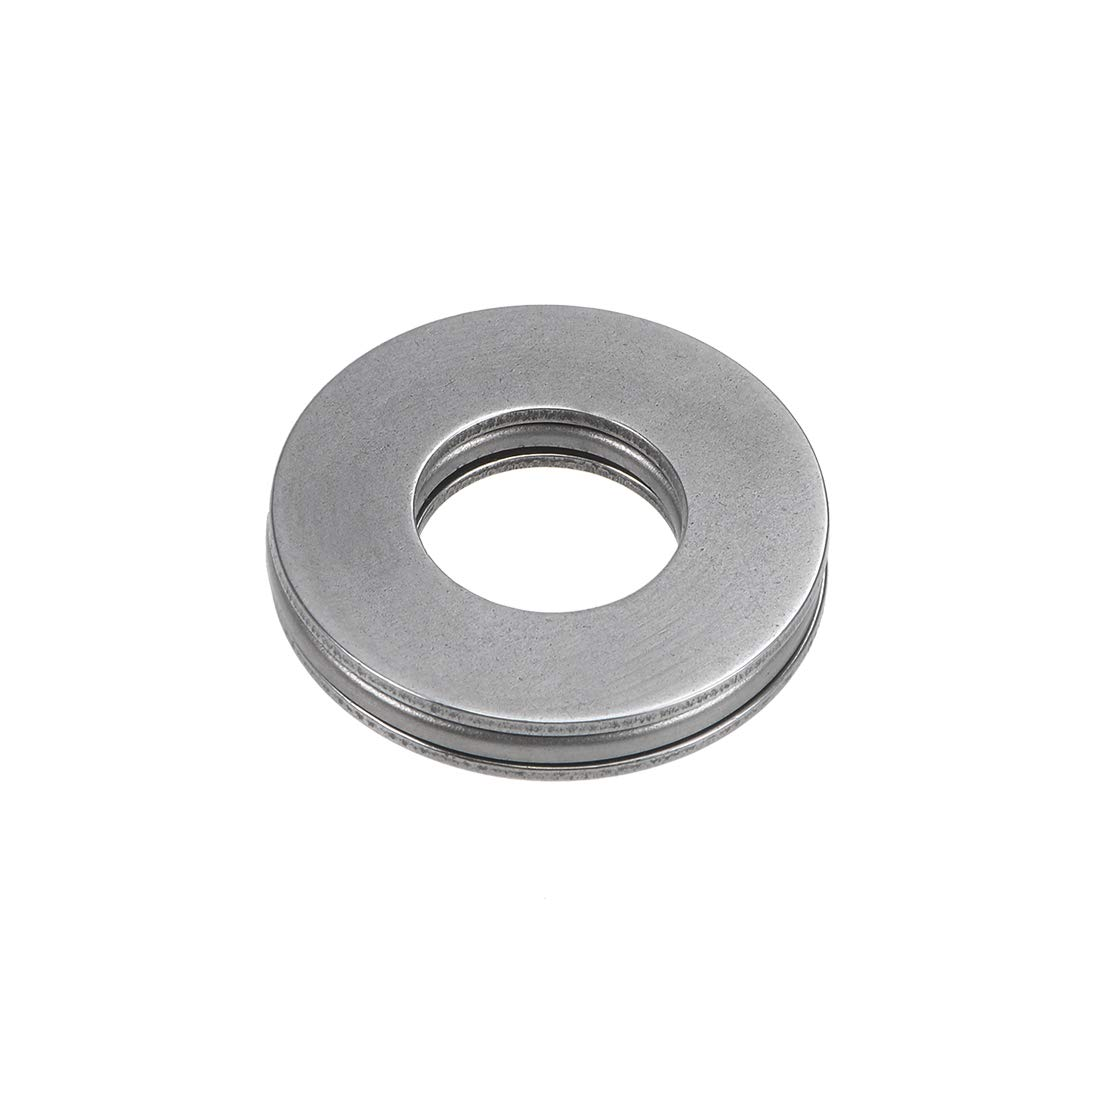 uxcell AXK0821 Thrust Needle Roller Bearings with Washers 8mm Bore 21mm OD 2mm Width 10pcs